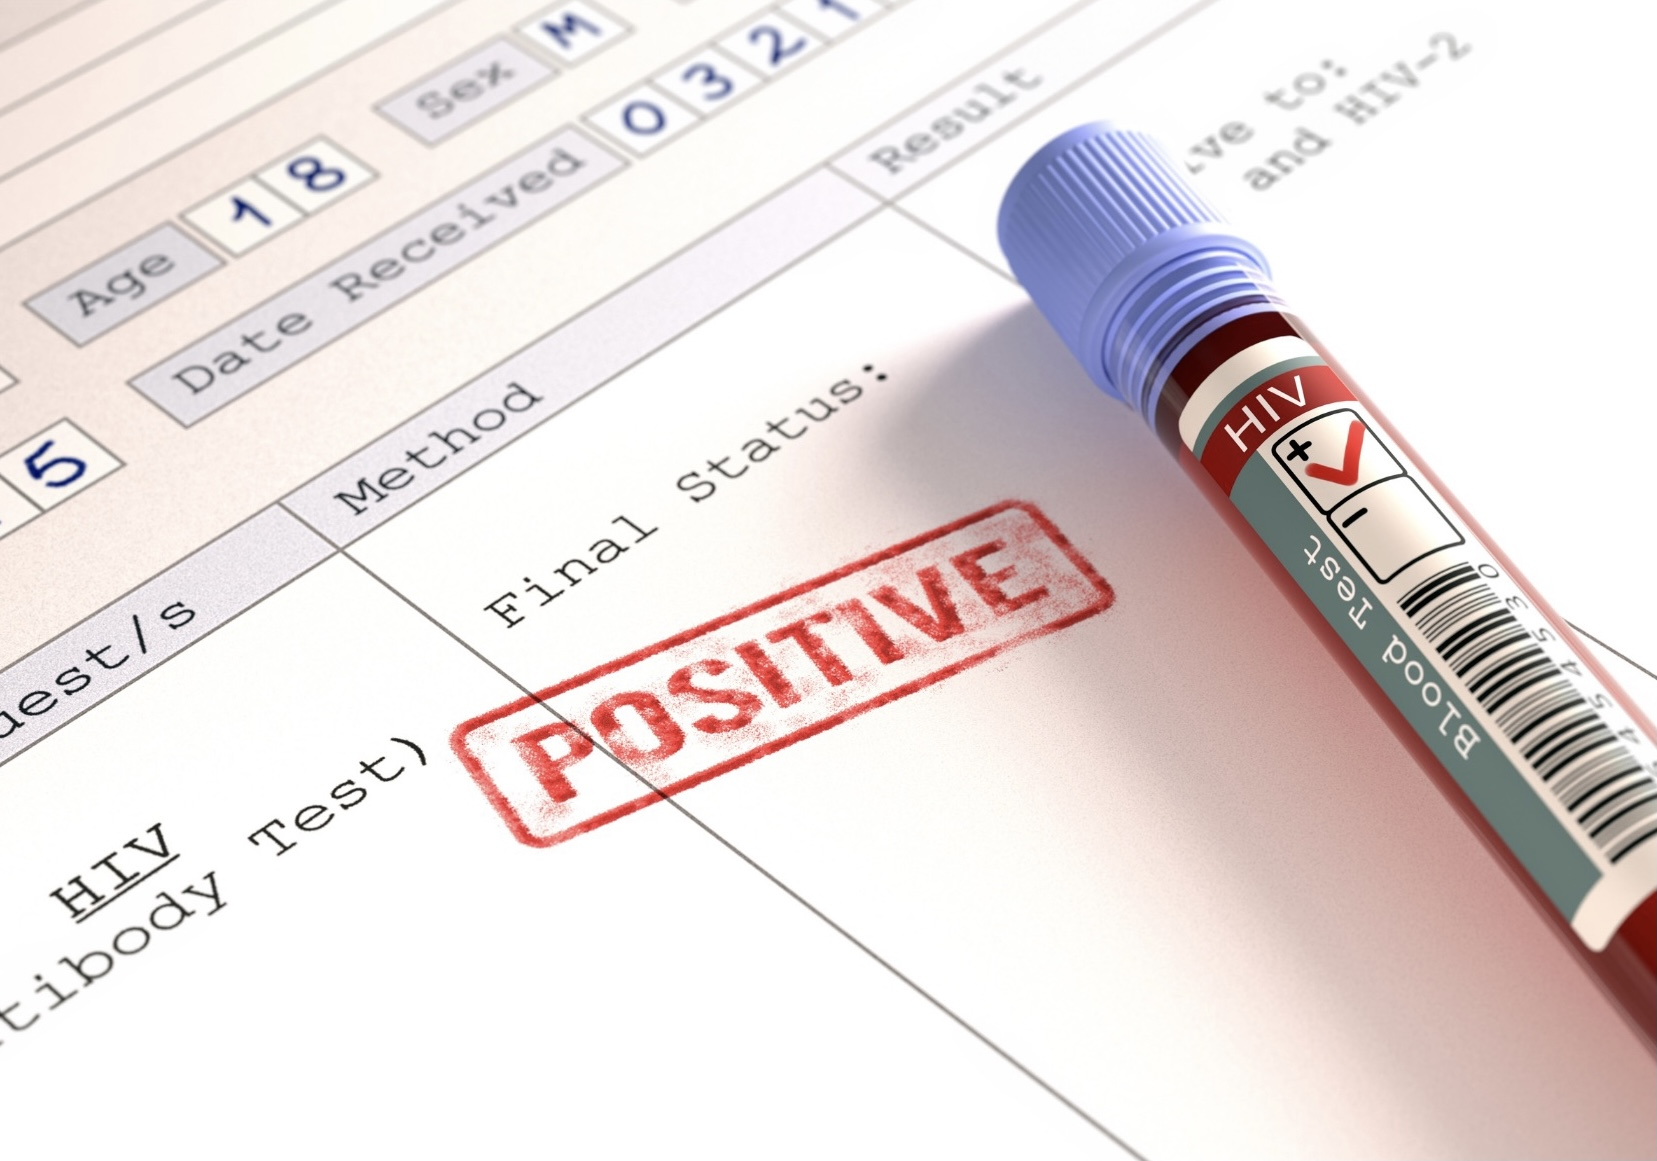 An HIV + result